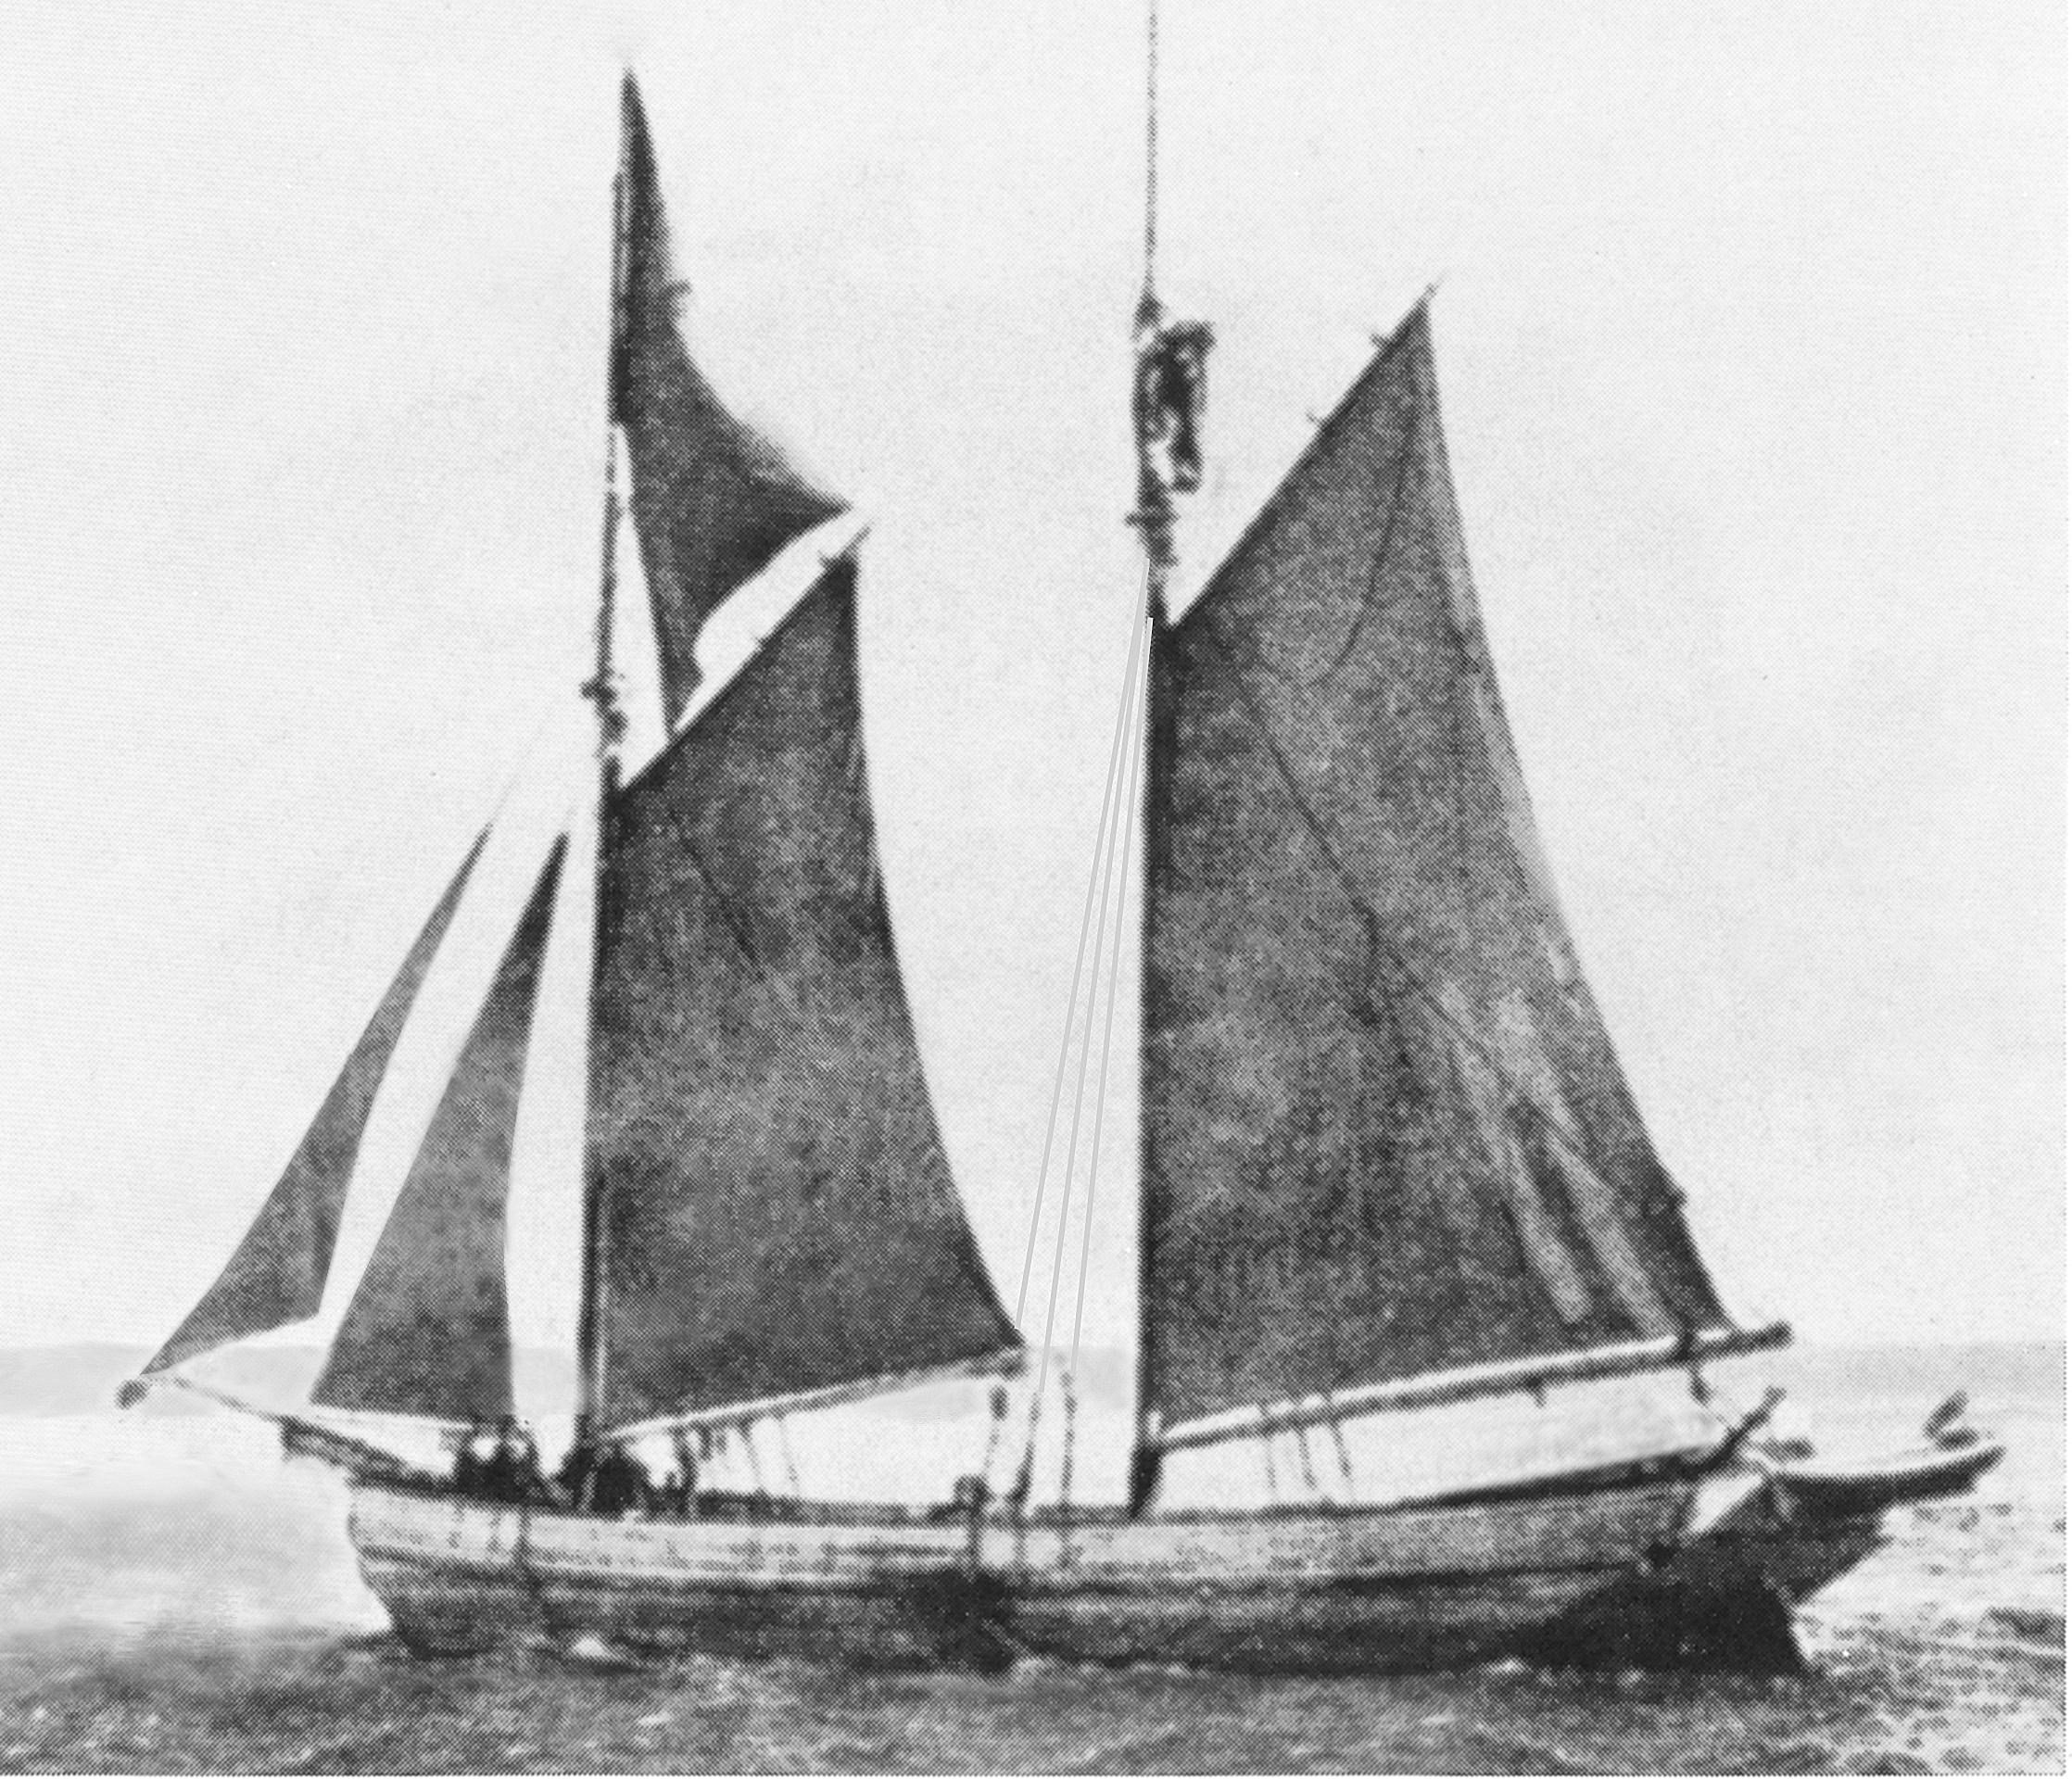 2-masted Schooner similar to Lizzie Throop. (Credit: Michigan Shipwreck Research Association)